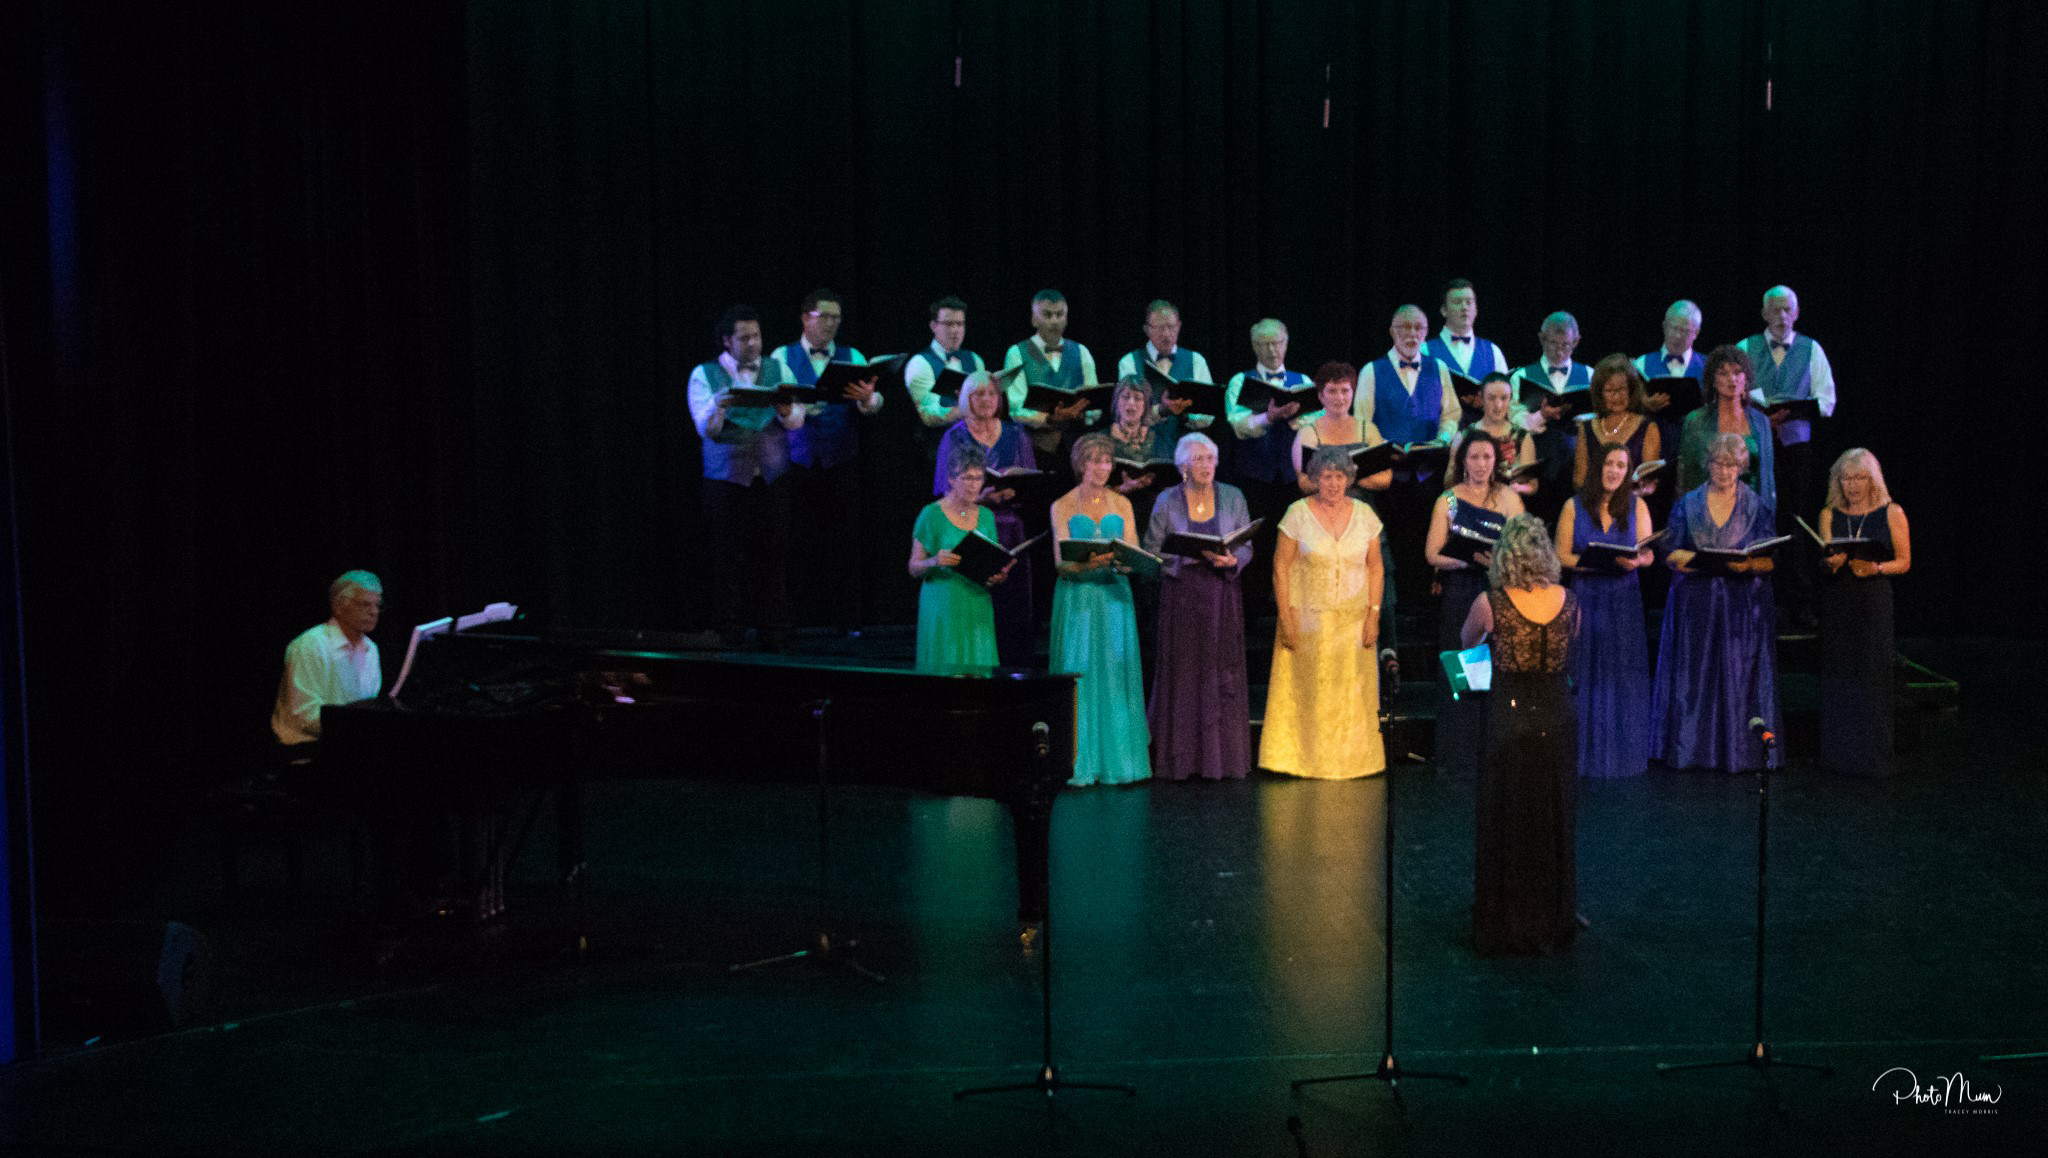 https://www.operanorth.co.nz/uploads/images/news/Choir singing colour.jpg